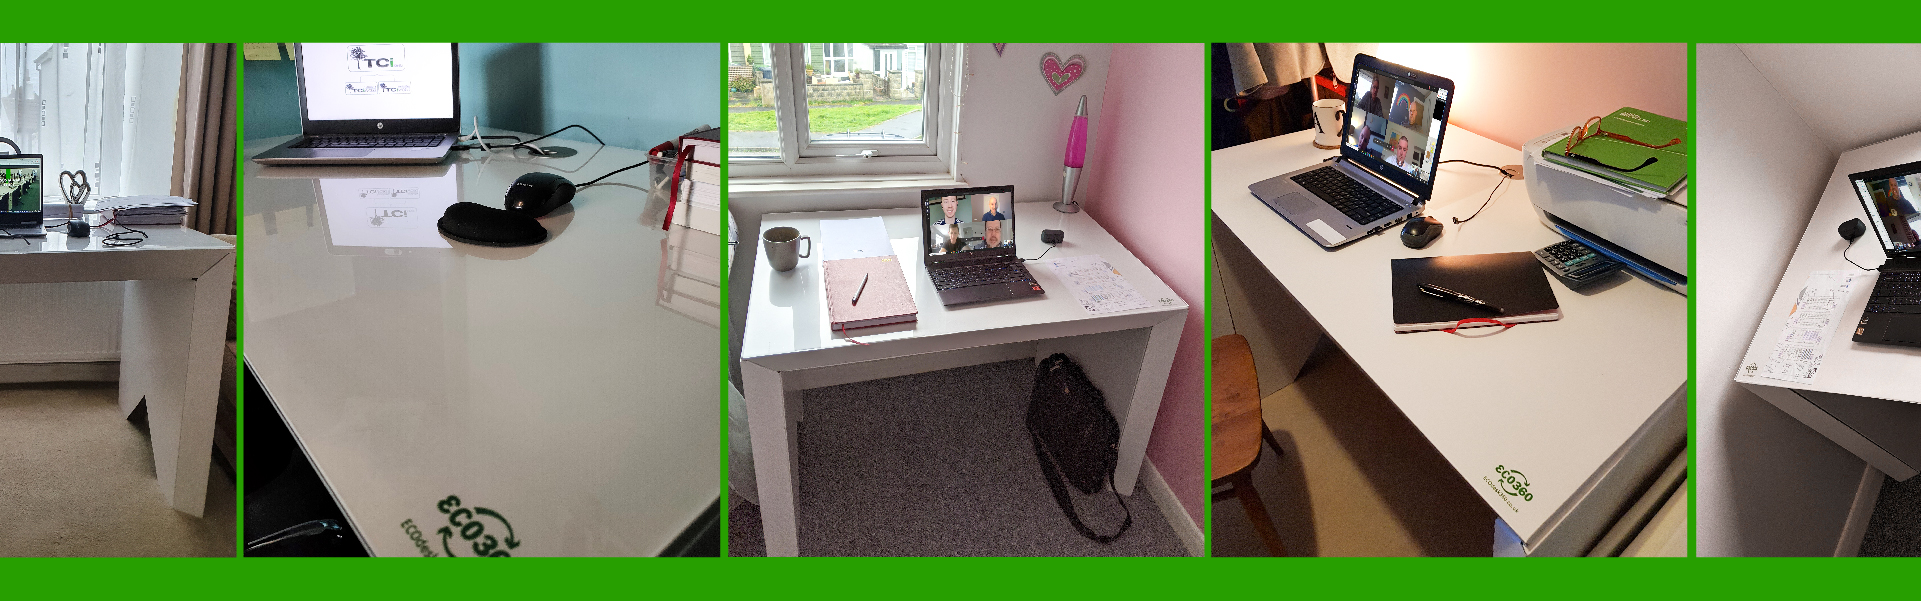 Working from home sustainably?